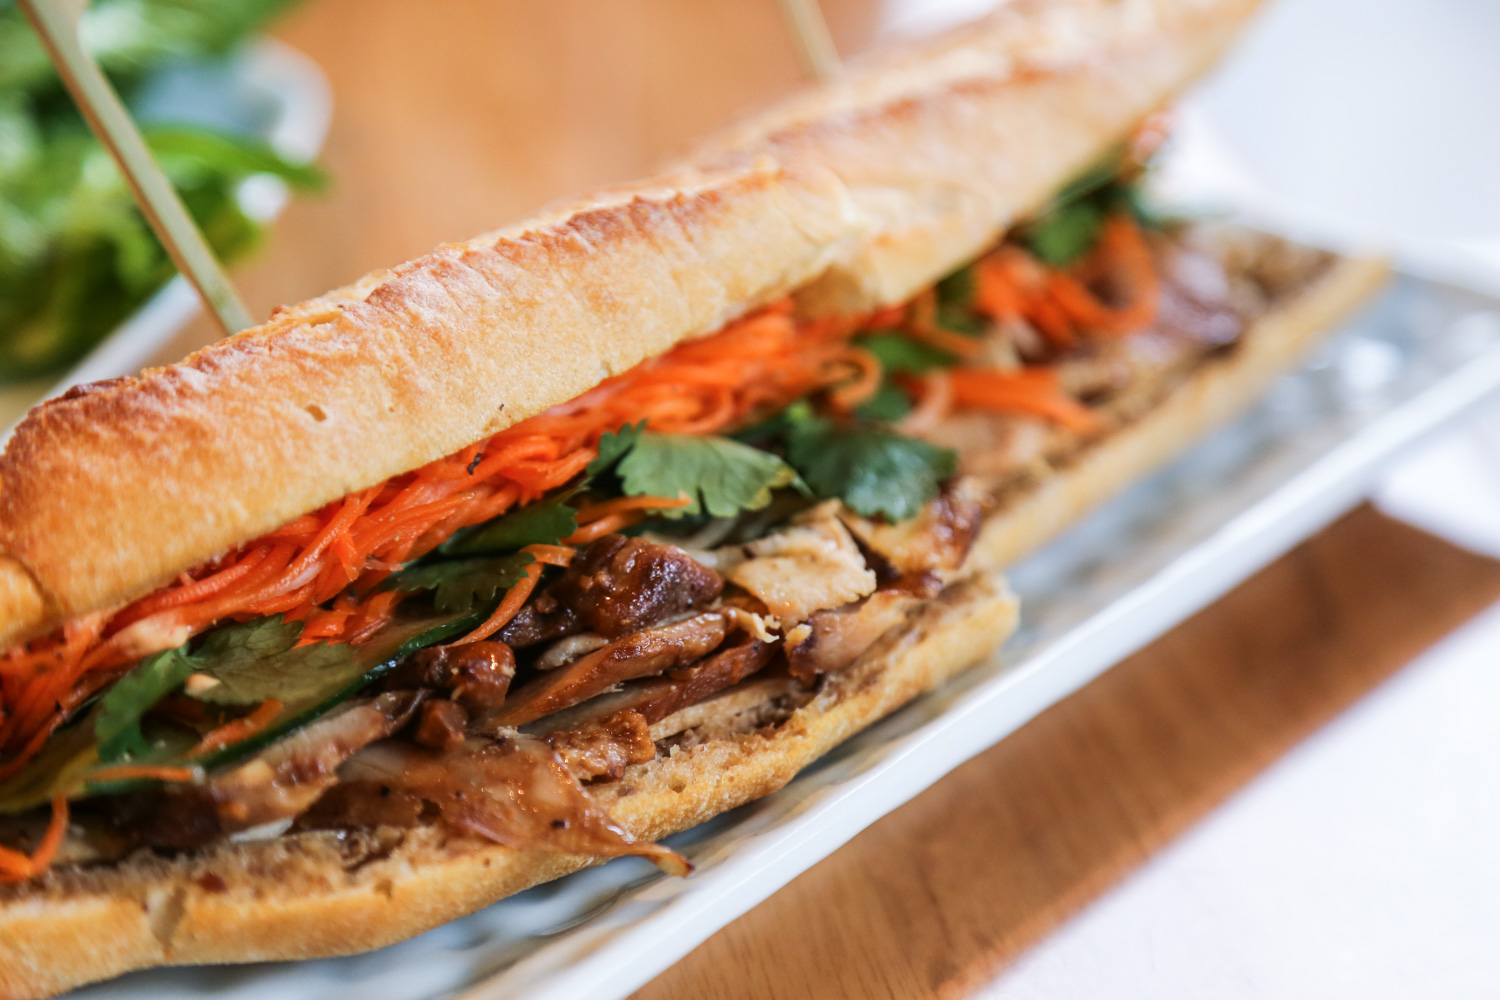 Shanghai's Best Meat Sandwiches